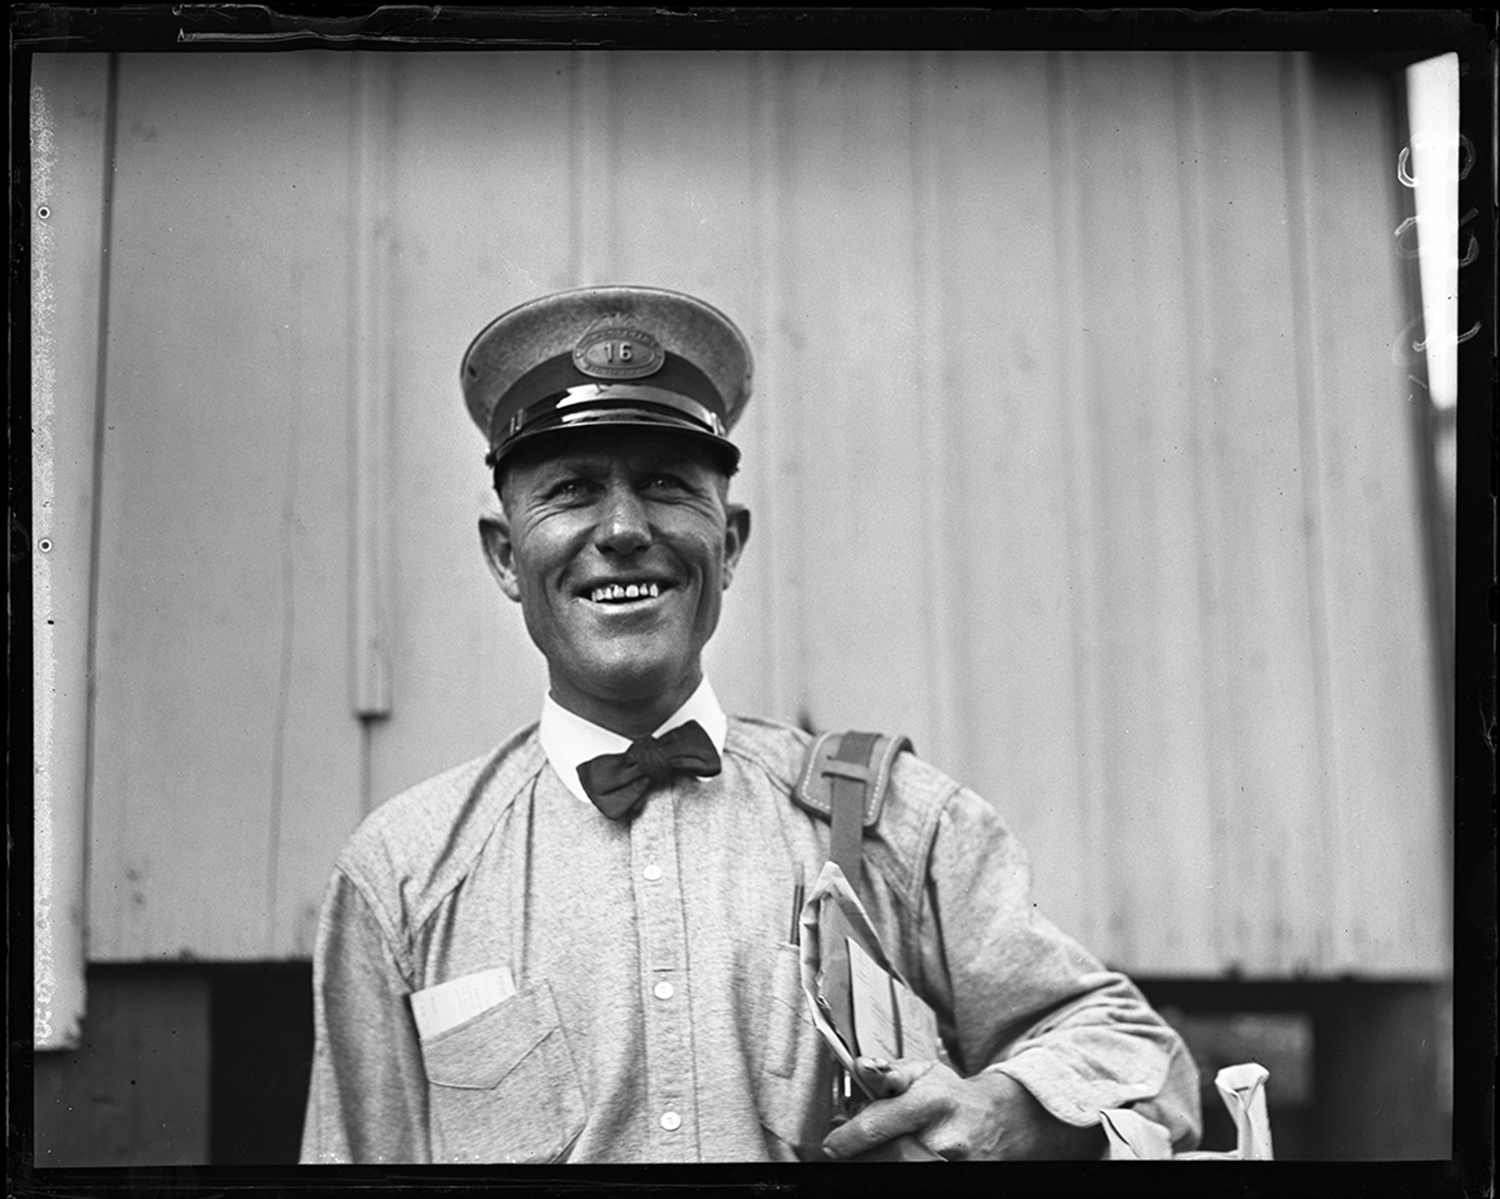 """C. W. Becker, postal carrier, delivered mail in the northwest section of the city. His portrait is from a """"smile of the day"""" contest held by the newspaper, published Oct. 17, 1930. File/ The State Journal-Register"""